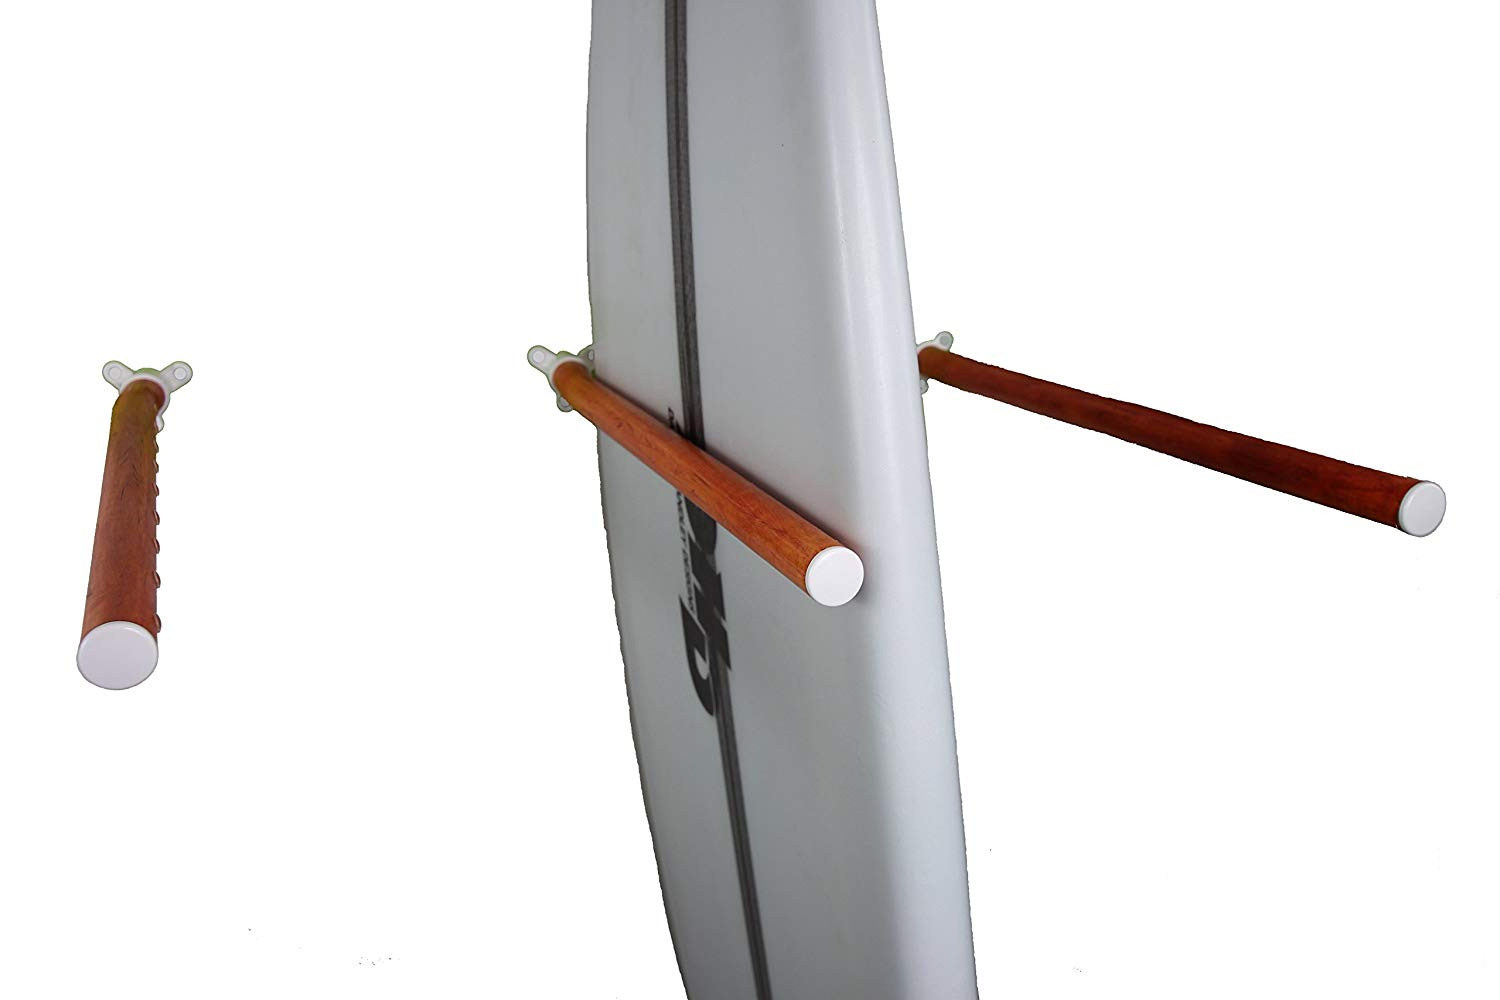 Faux Wood Wall Rack for Surfboards, Snowboards, Wakeboards & Skis (Single Bar)